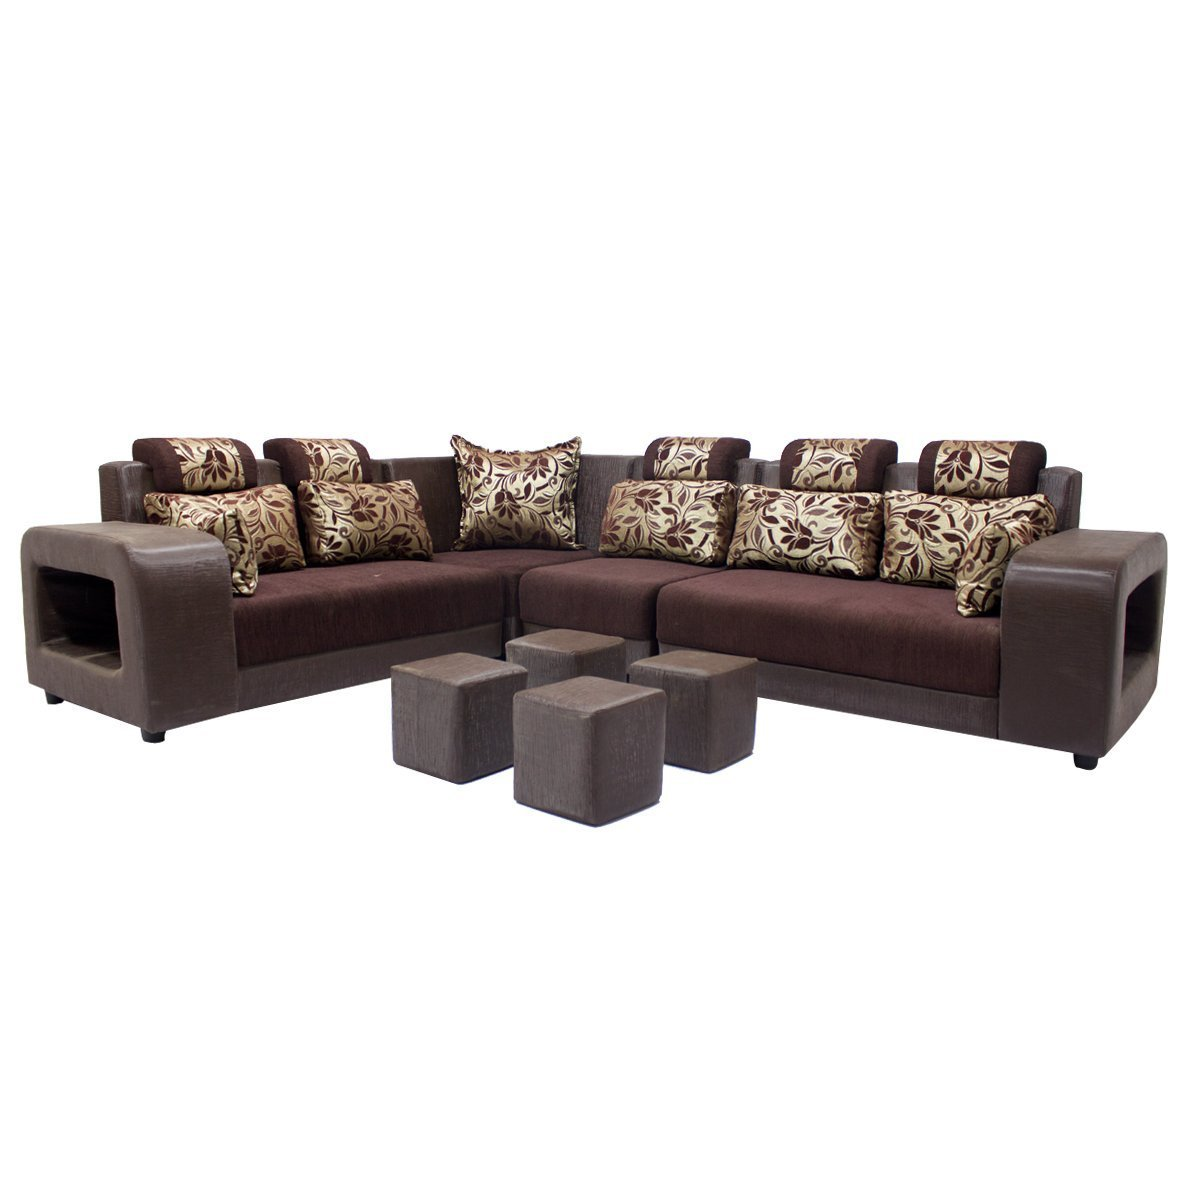 L Shape Sofa Set Kirti Nagar L Shape Sofa Set Online Delhi Review Home Co